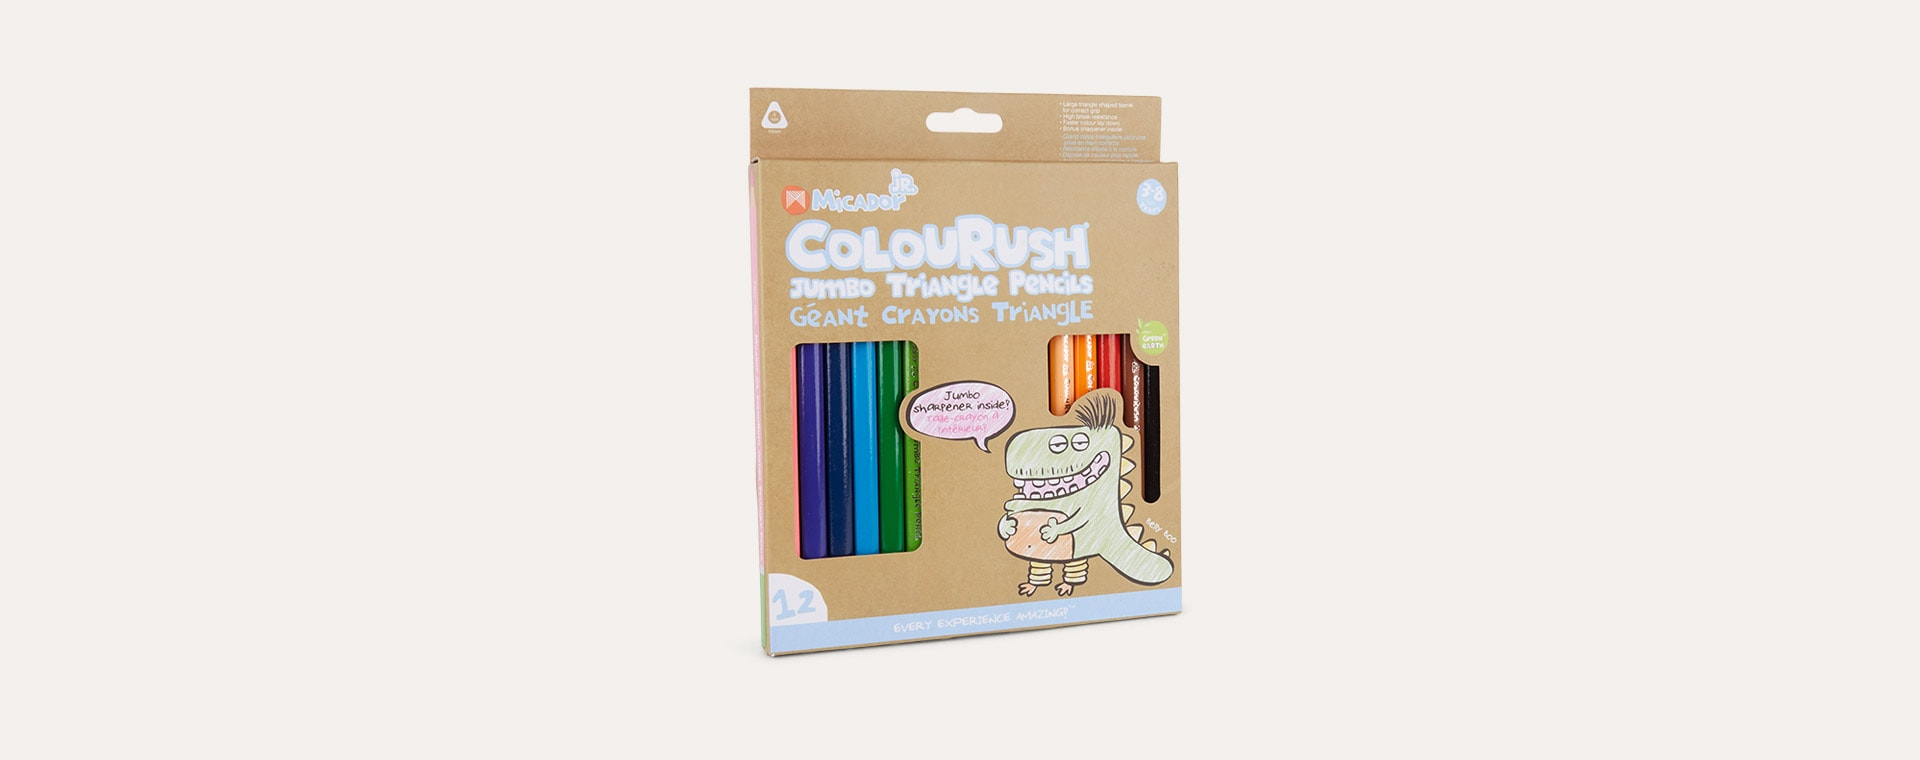 Multi Micador Micador Junior ColourRush Jumbo Pencils